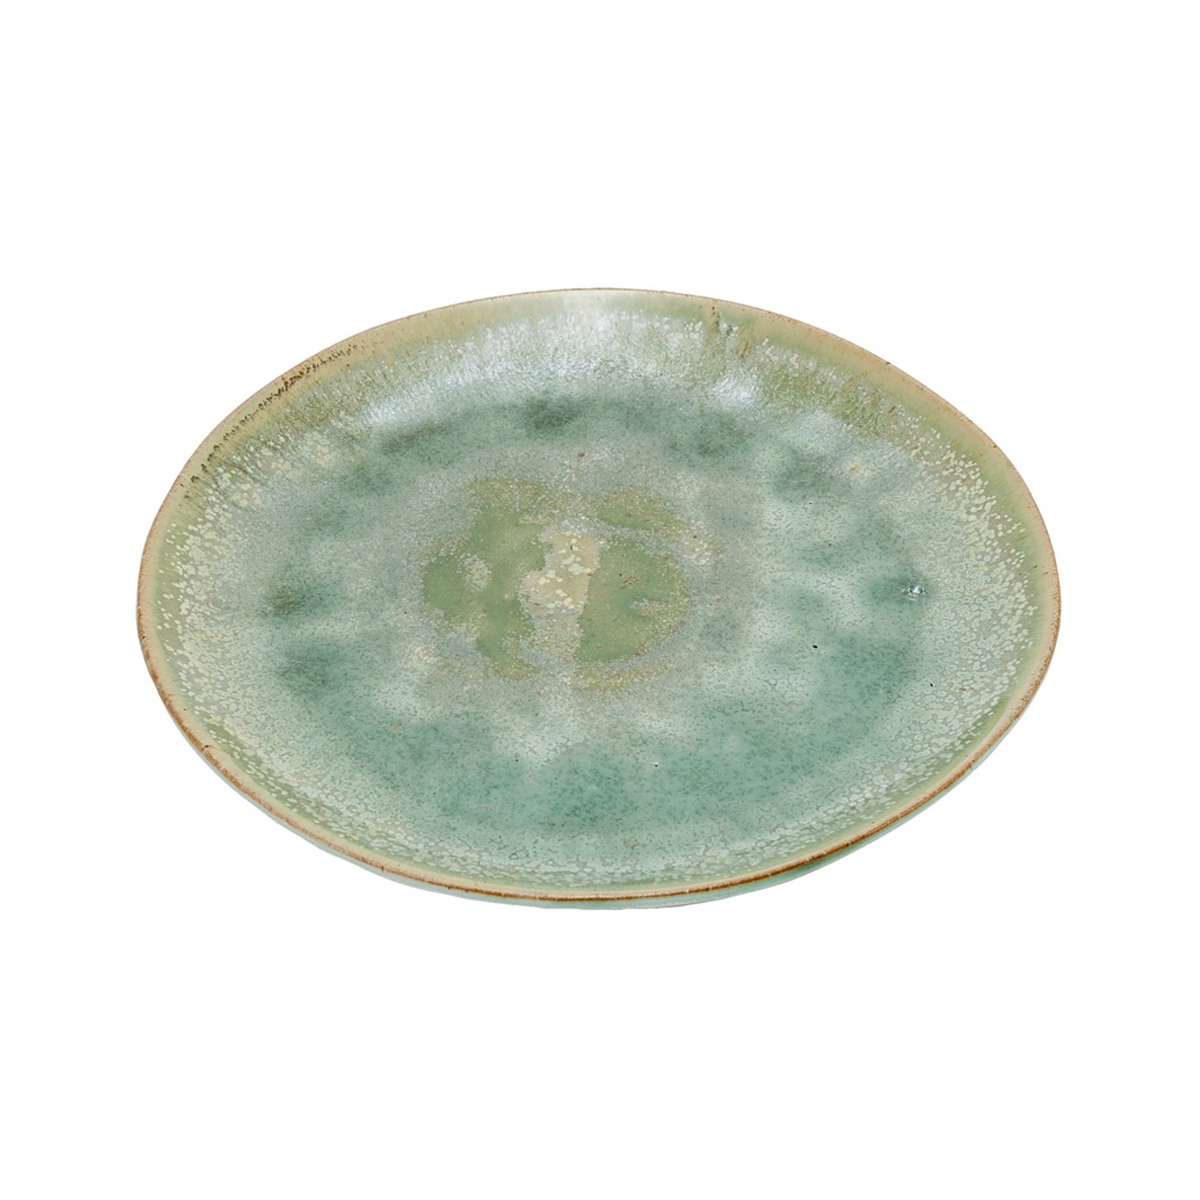 green-glazed-side-plates